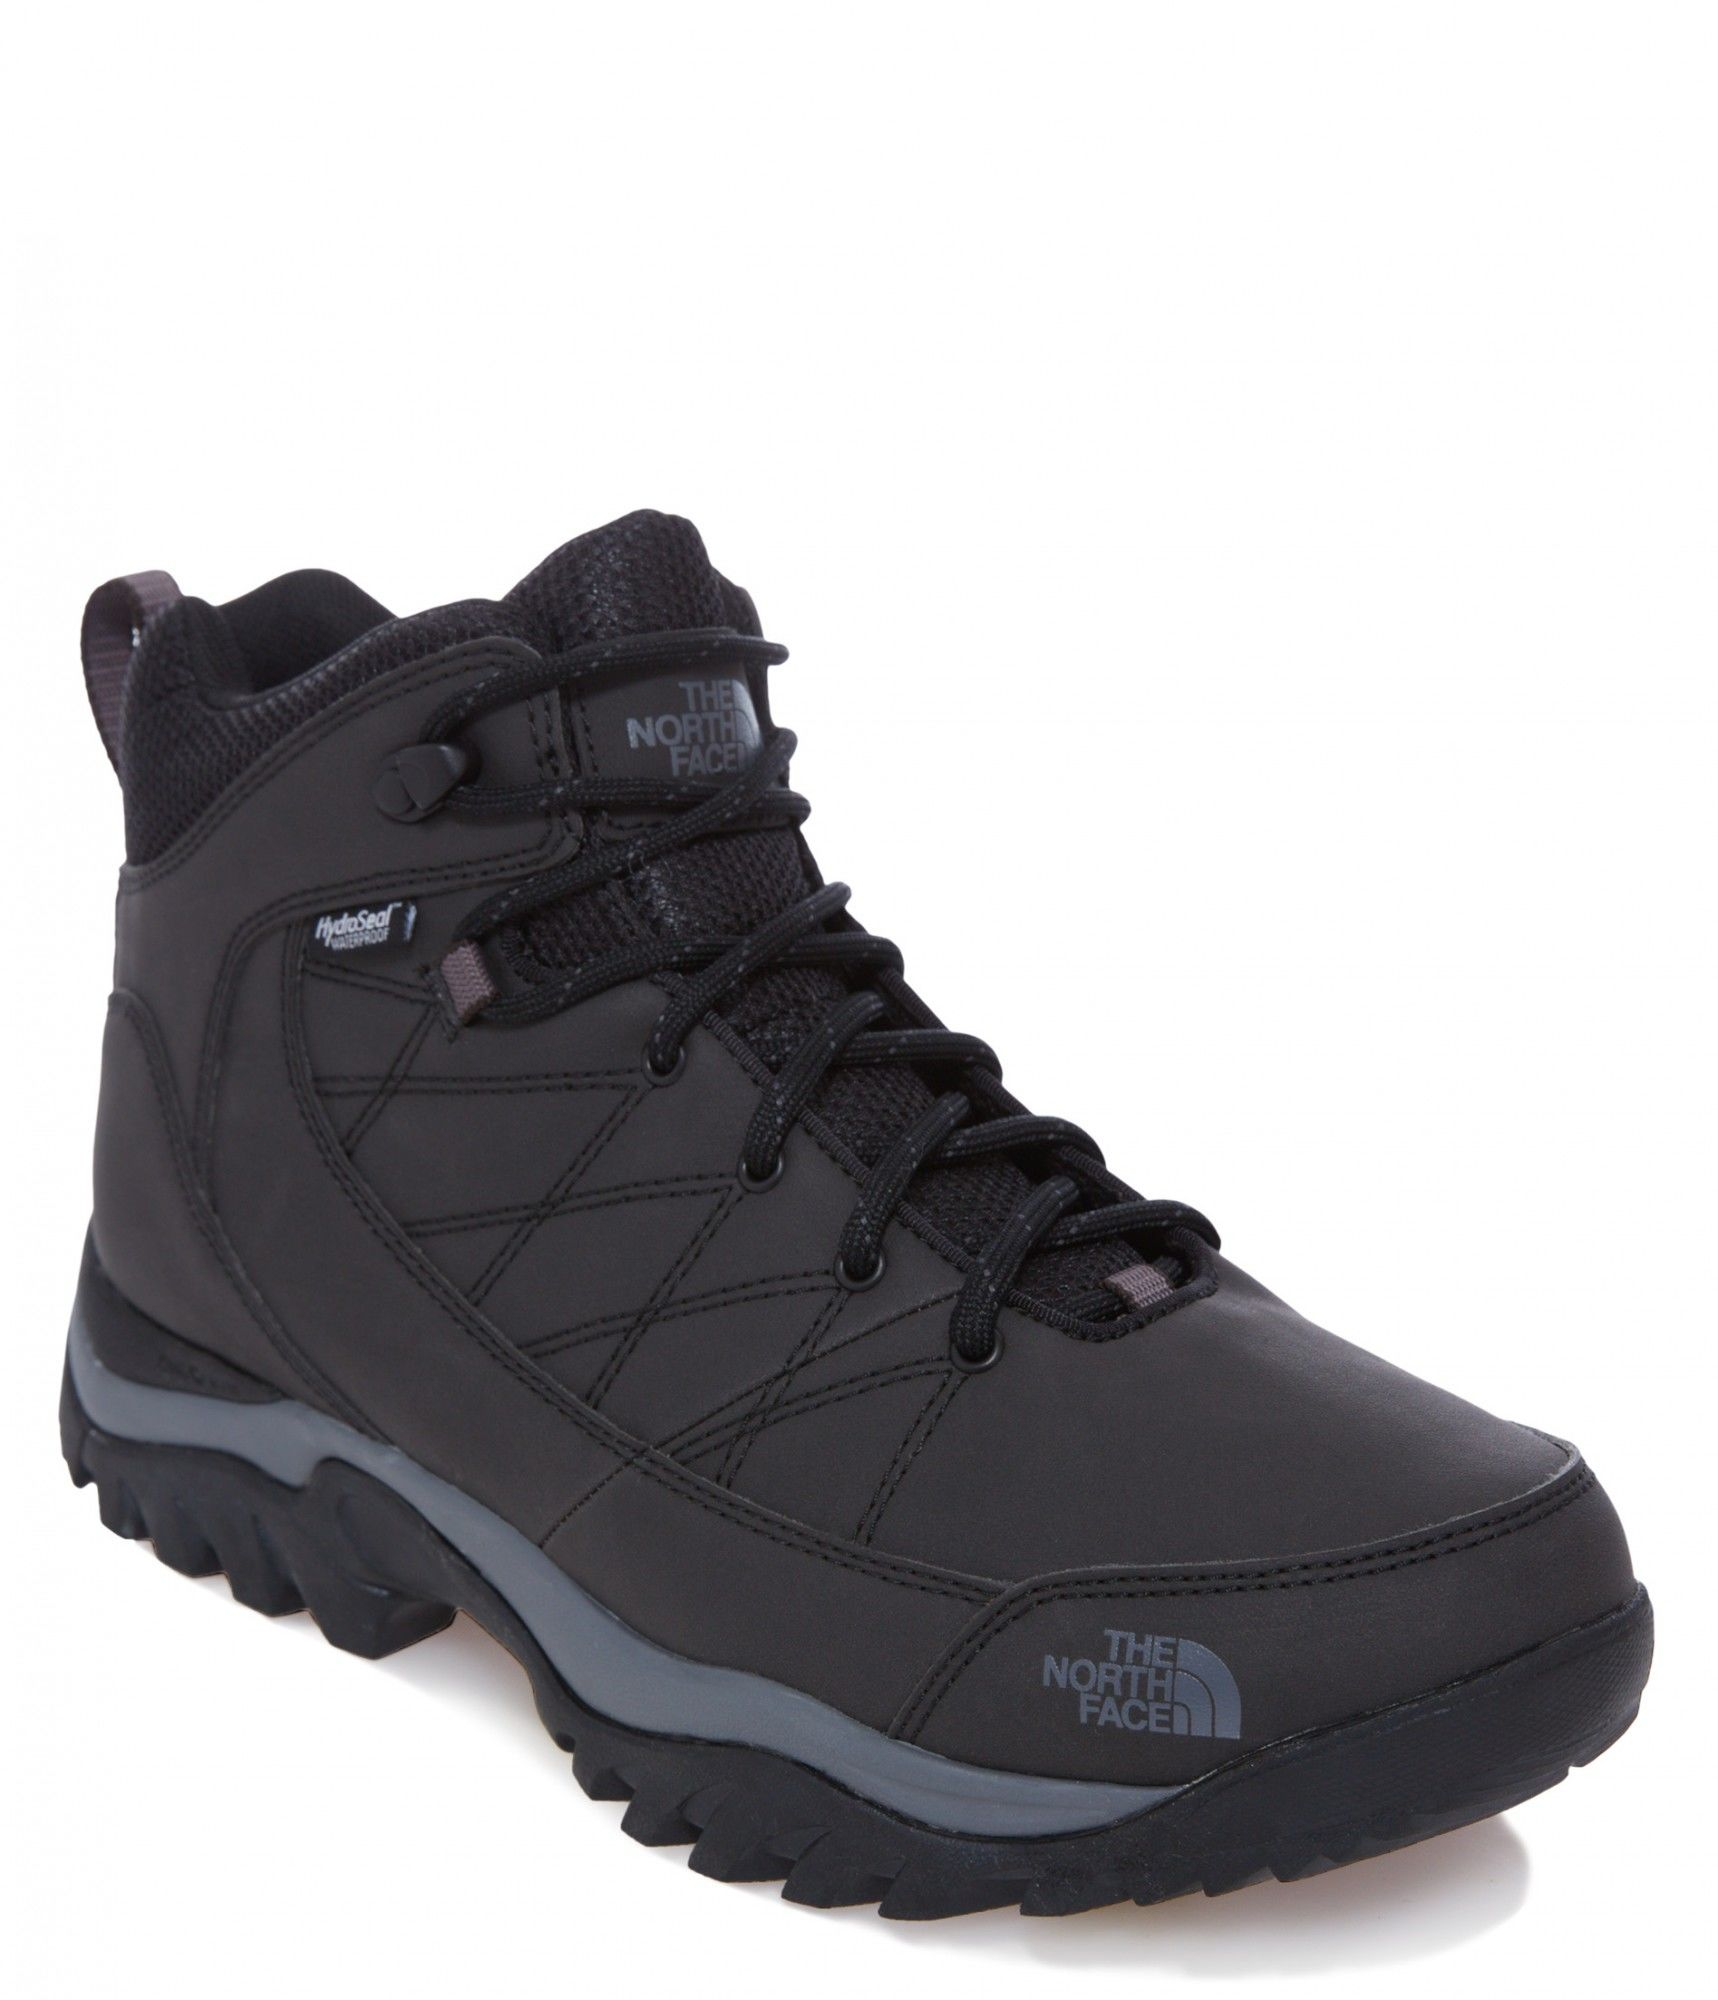 The North Face Storm Strike Waterproof Grau, Male Hiking-& Approach-Schuh, 42